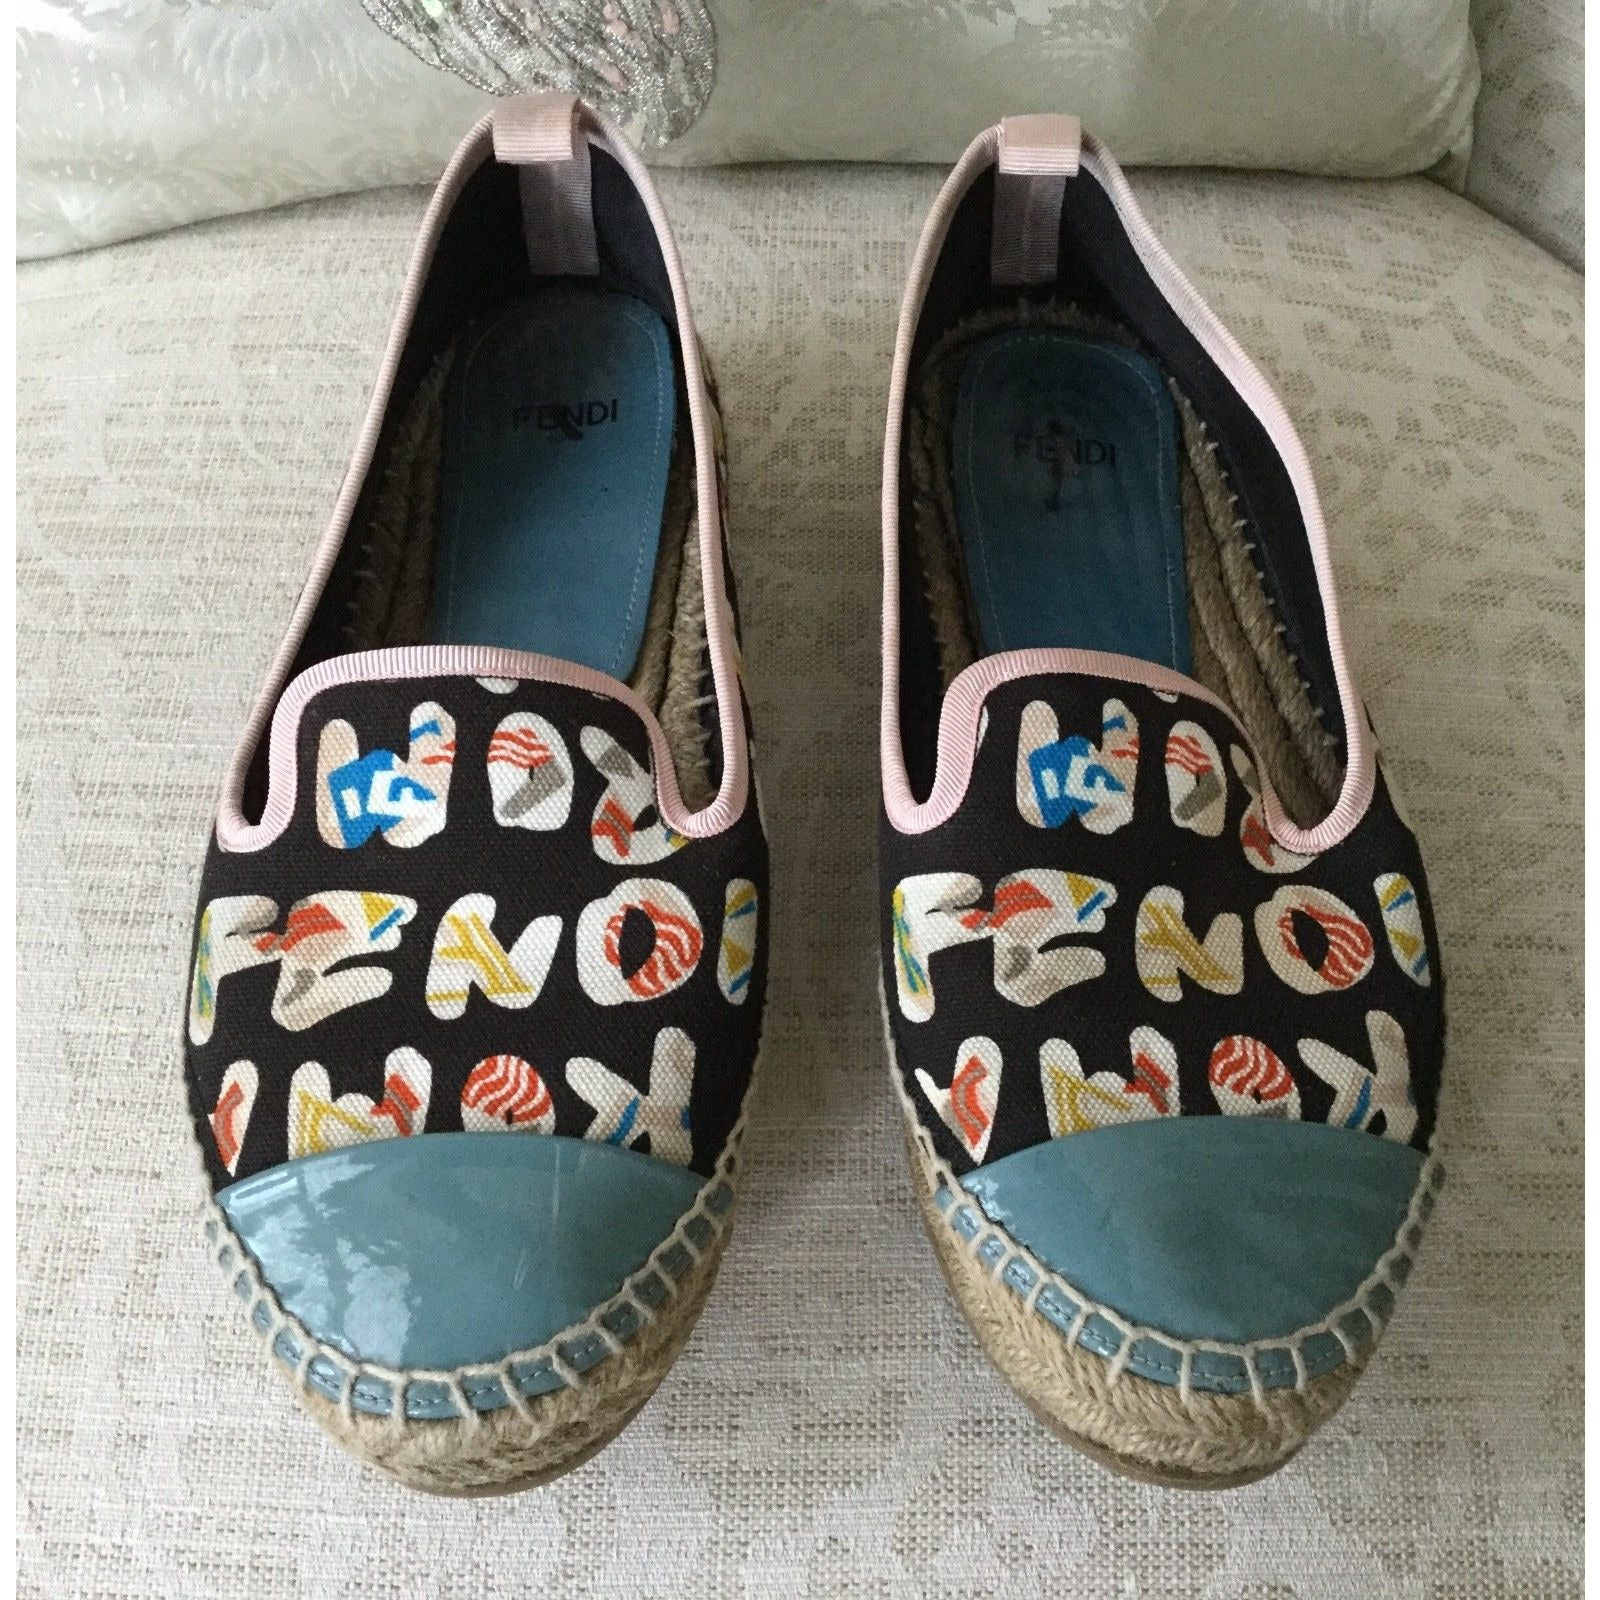 Pre-Owned FENDI Junia ROMA Logo Print Canvas Espadrille Flats Shoes Black 7.5